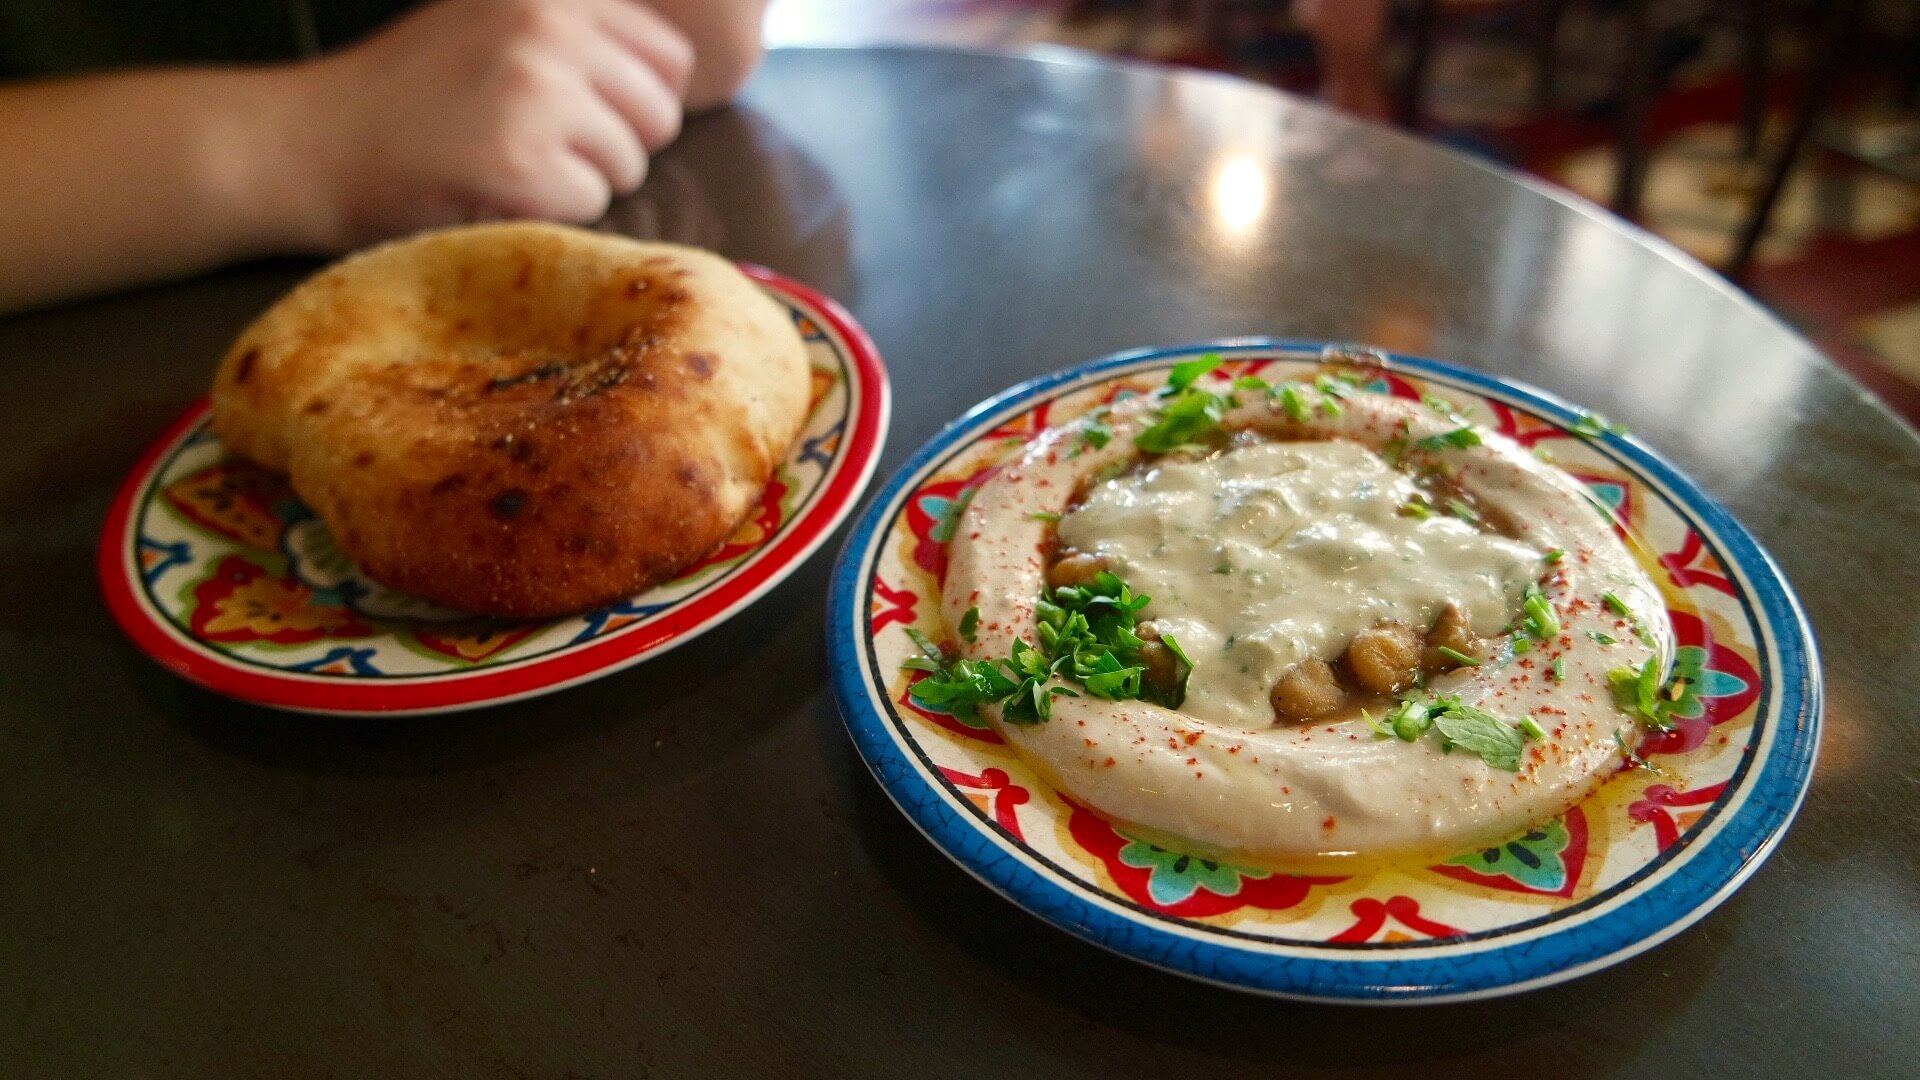 A photo of an Israeli food combination of Hummus and Pita